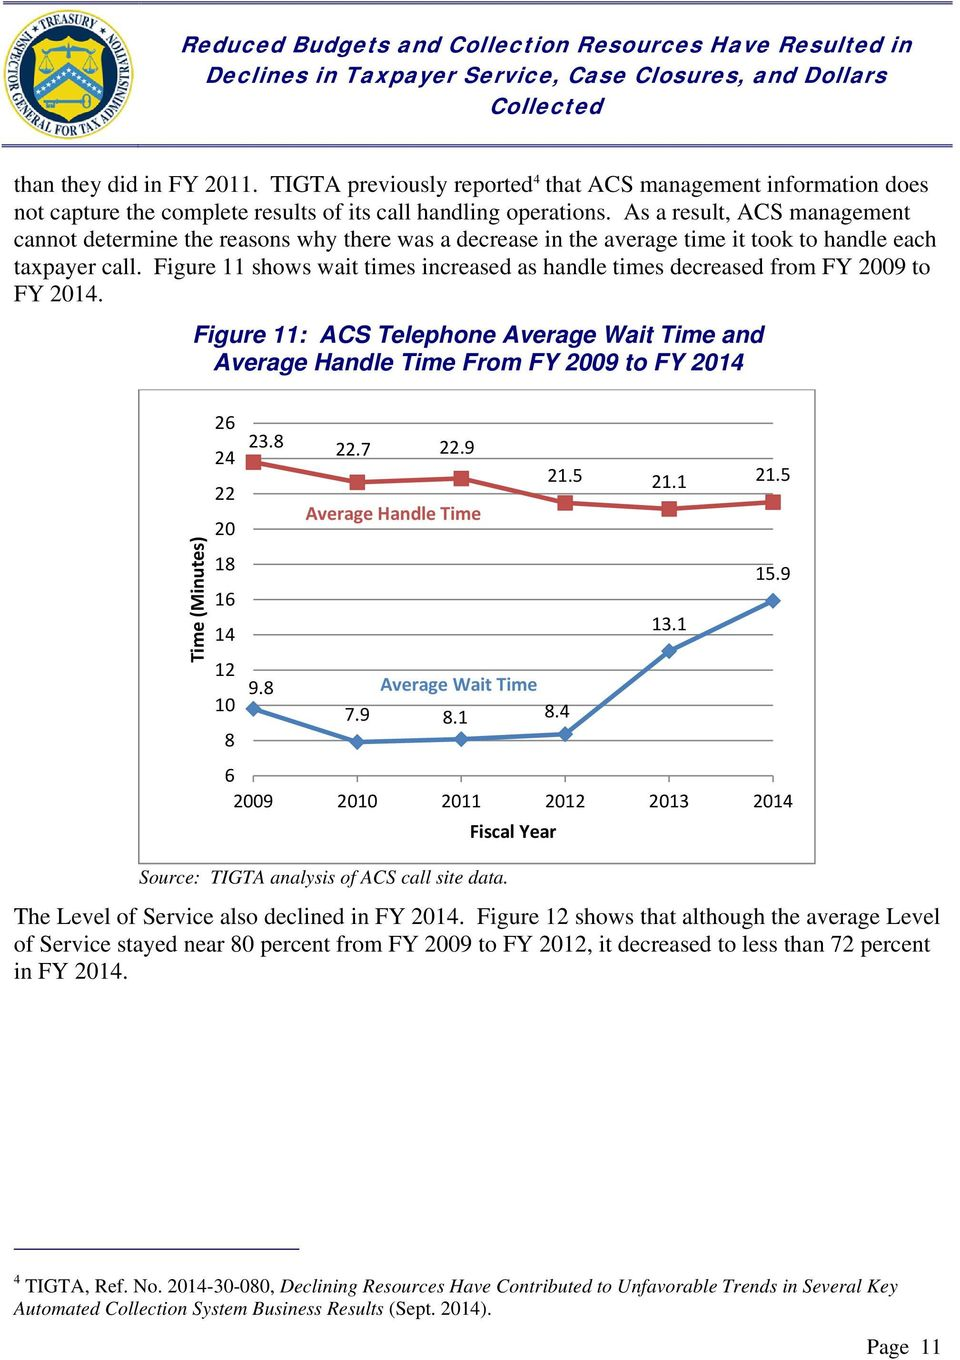 Figure 11 shows wait times increased as handle times decreased from FY 2009 to FY 2014.